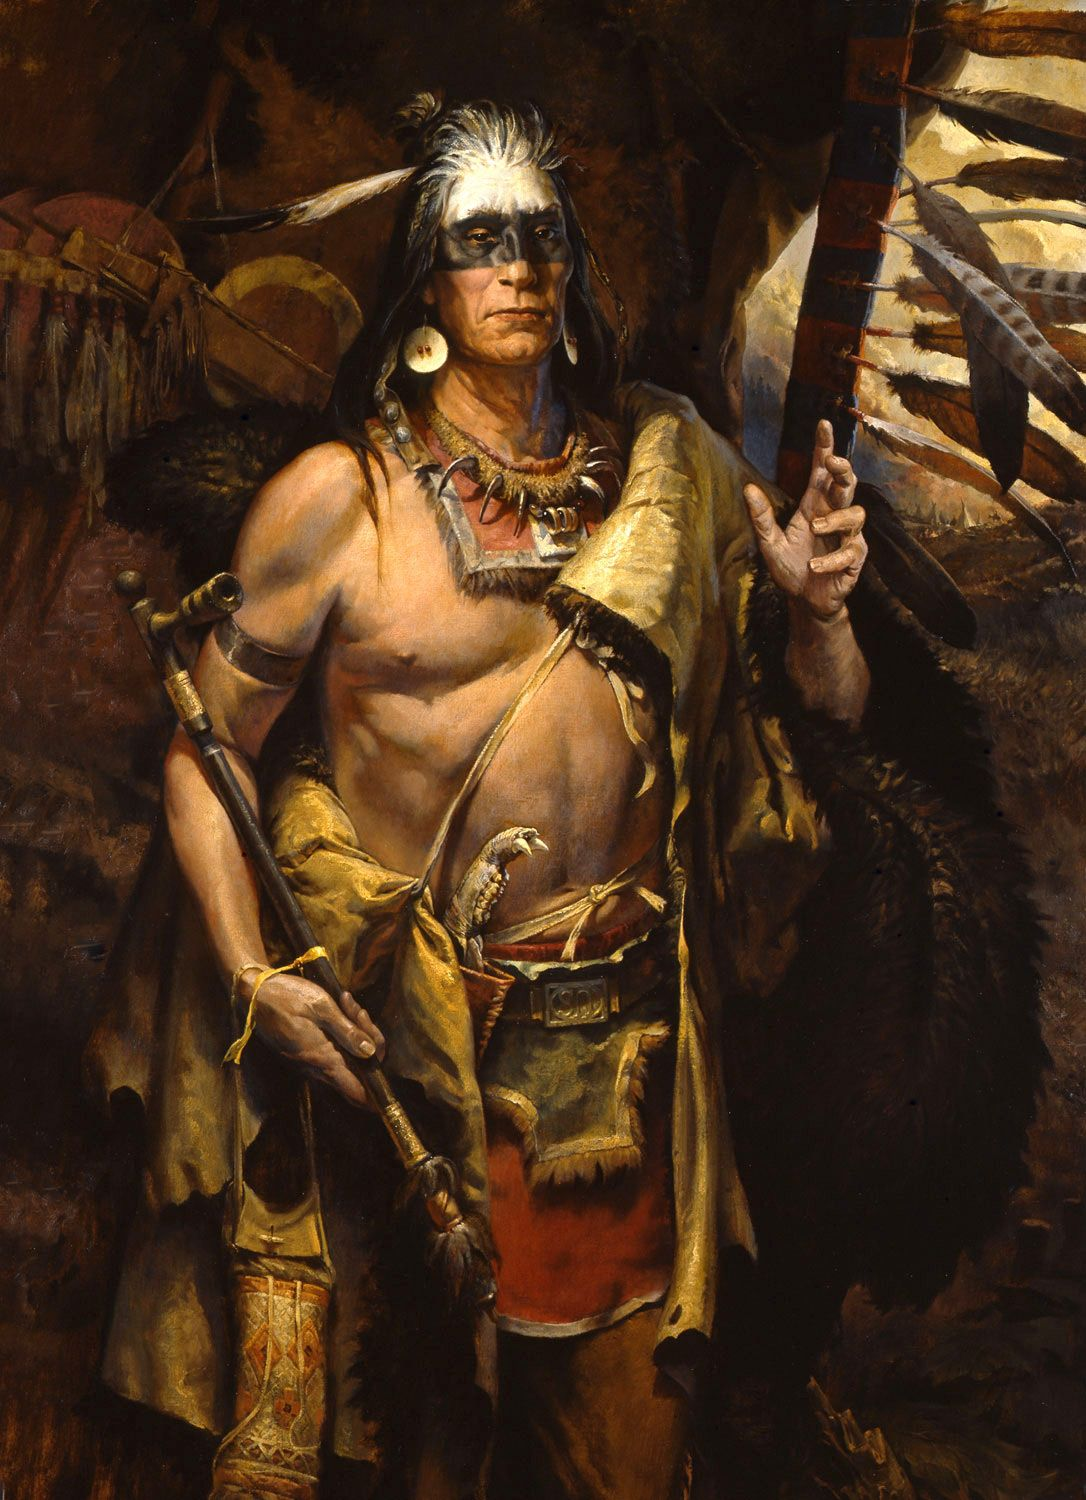 a history of the battle of the little big horn between the native american indians and the american  The battle of the little bighorn is one of the most studied actions in us military history, and the immense literature on the subject is devoted primarily to answering questions about custer's.